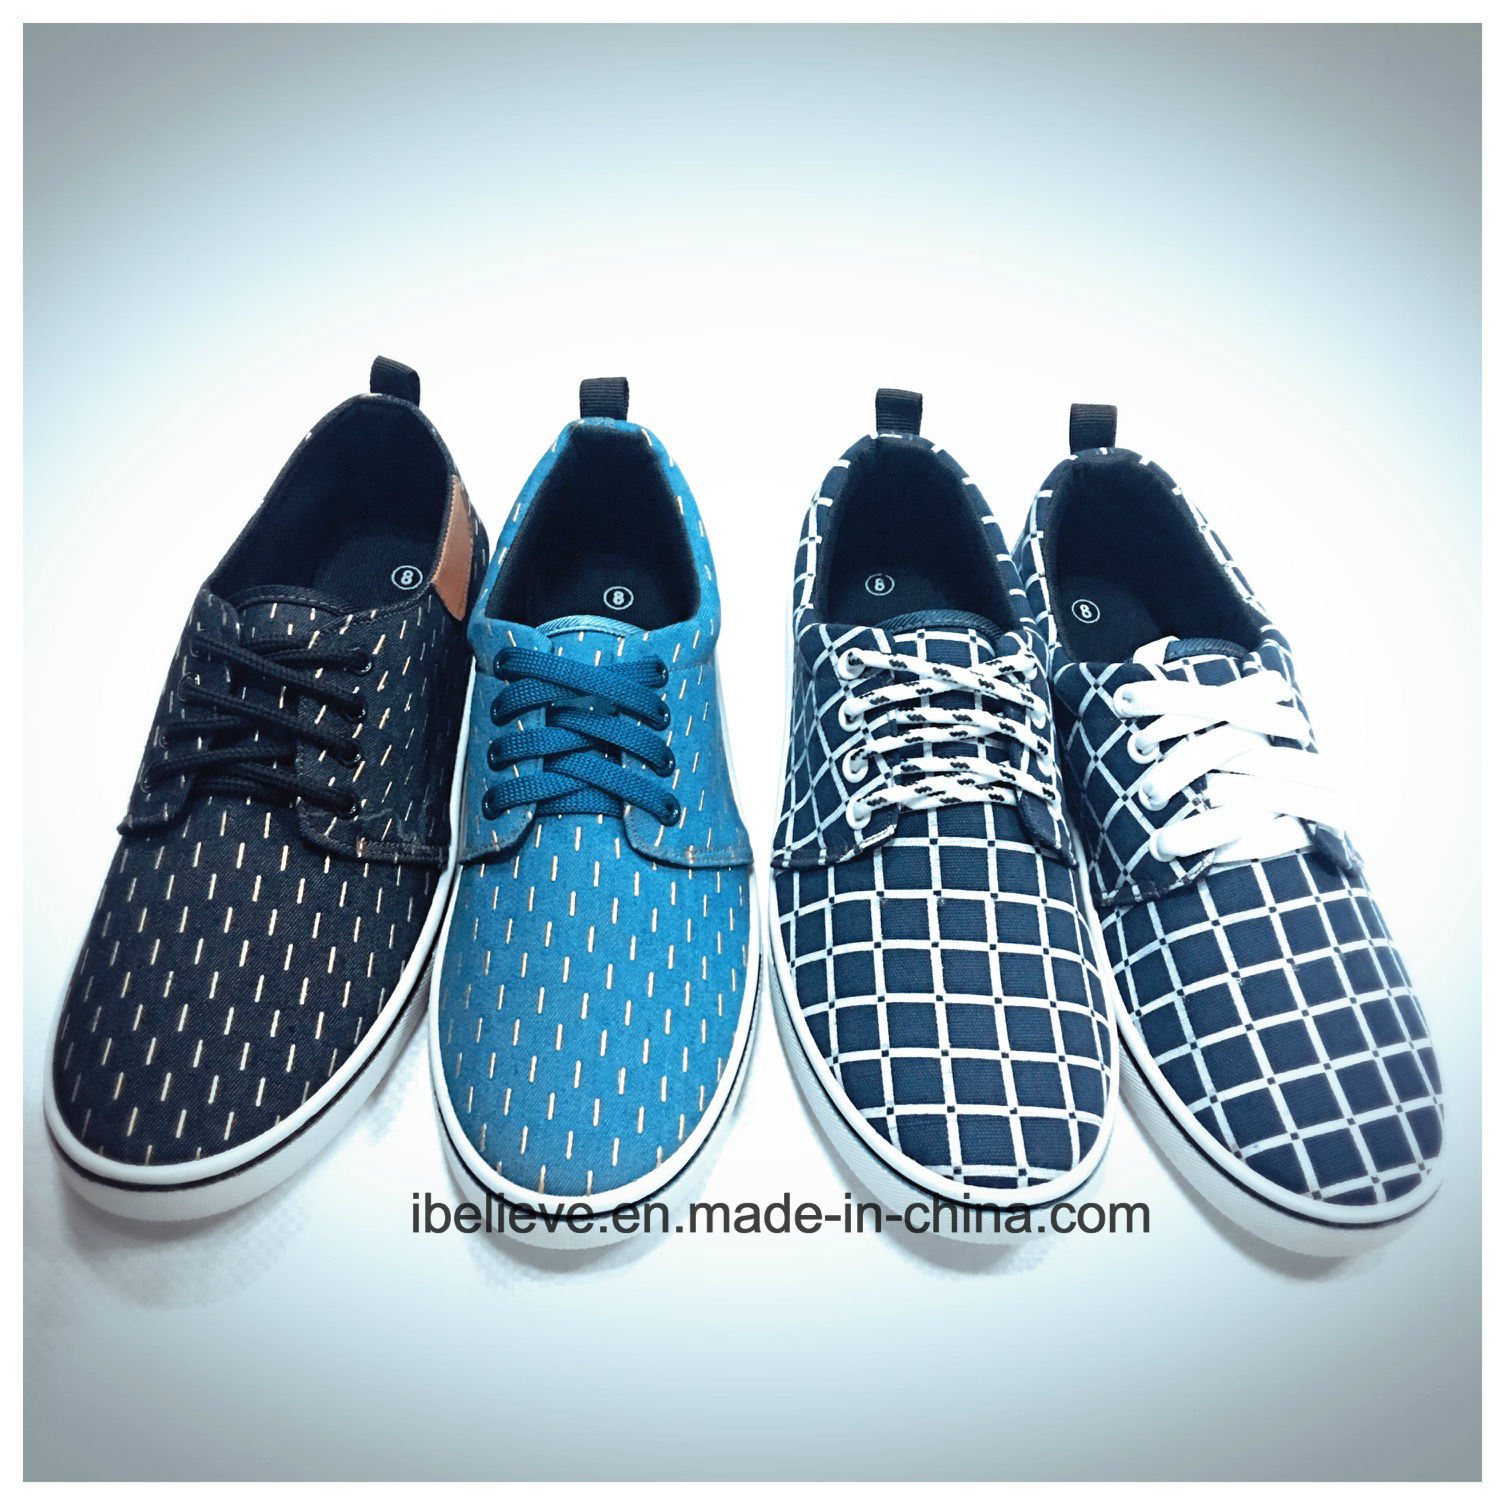 China Market Popular Shoes for Export